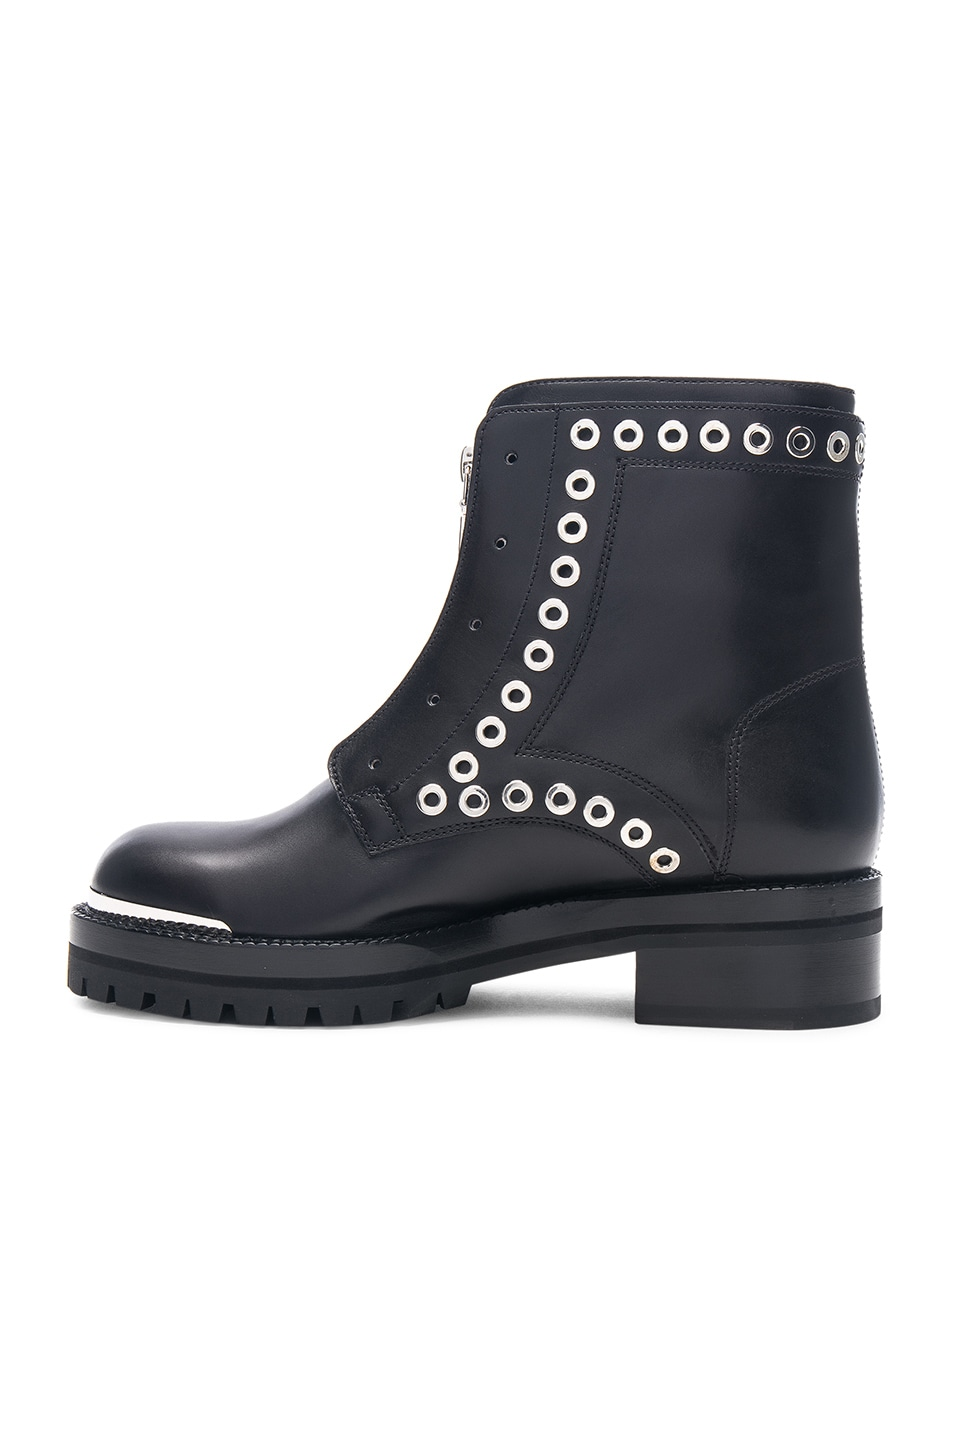 Image 5 of Alexander McQueen Eyelet Zip Up Leather Boots in Black